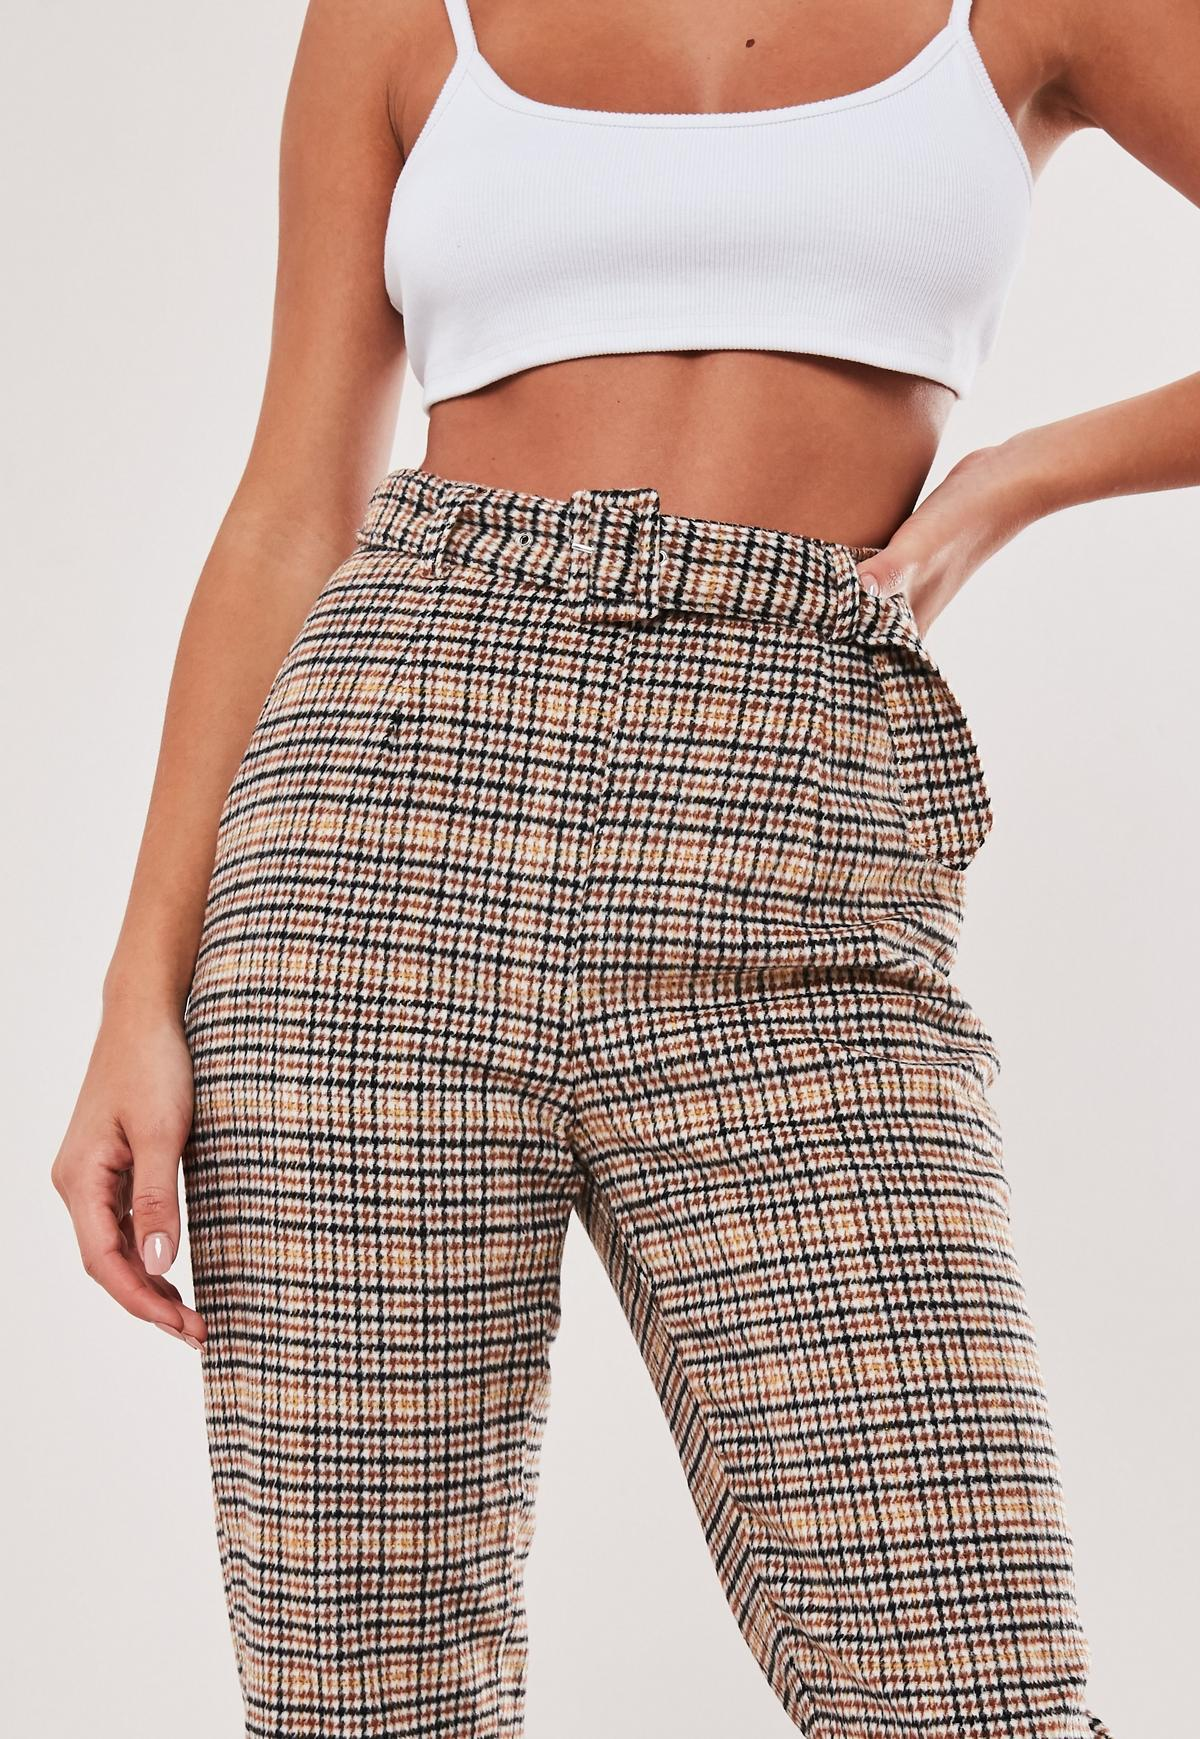 Brown heritage check cigarette trousers excise duty on cigarettes uae